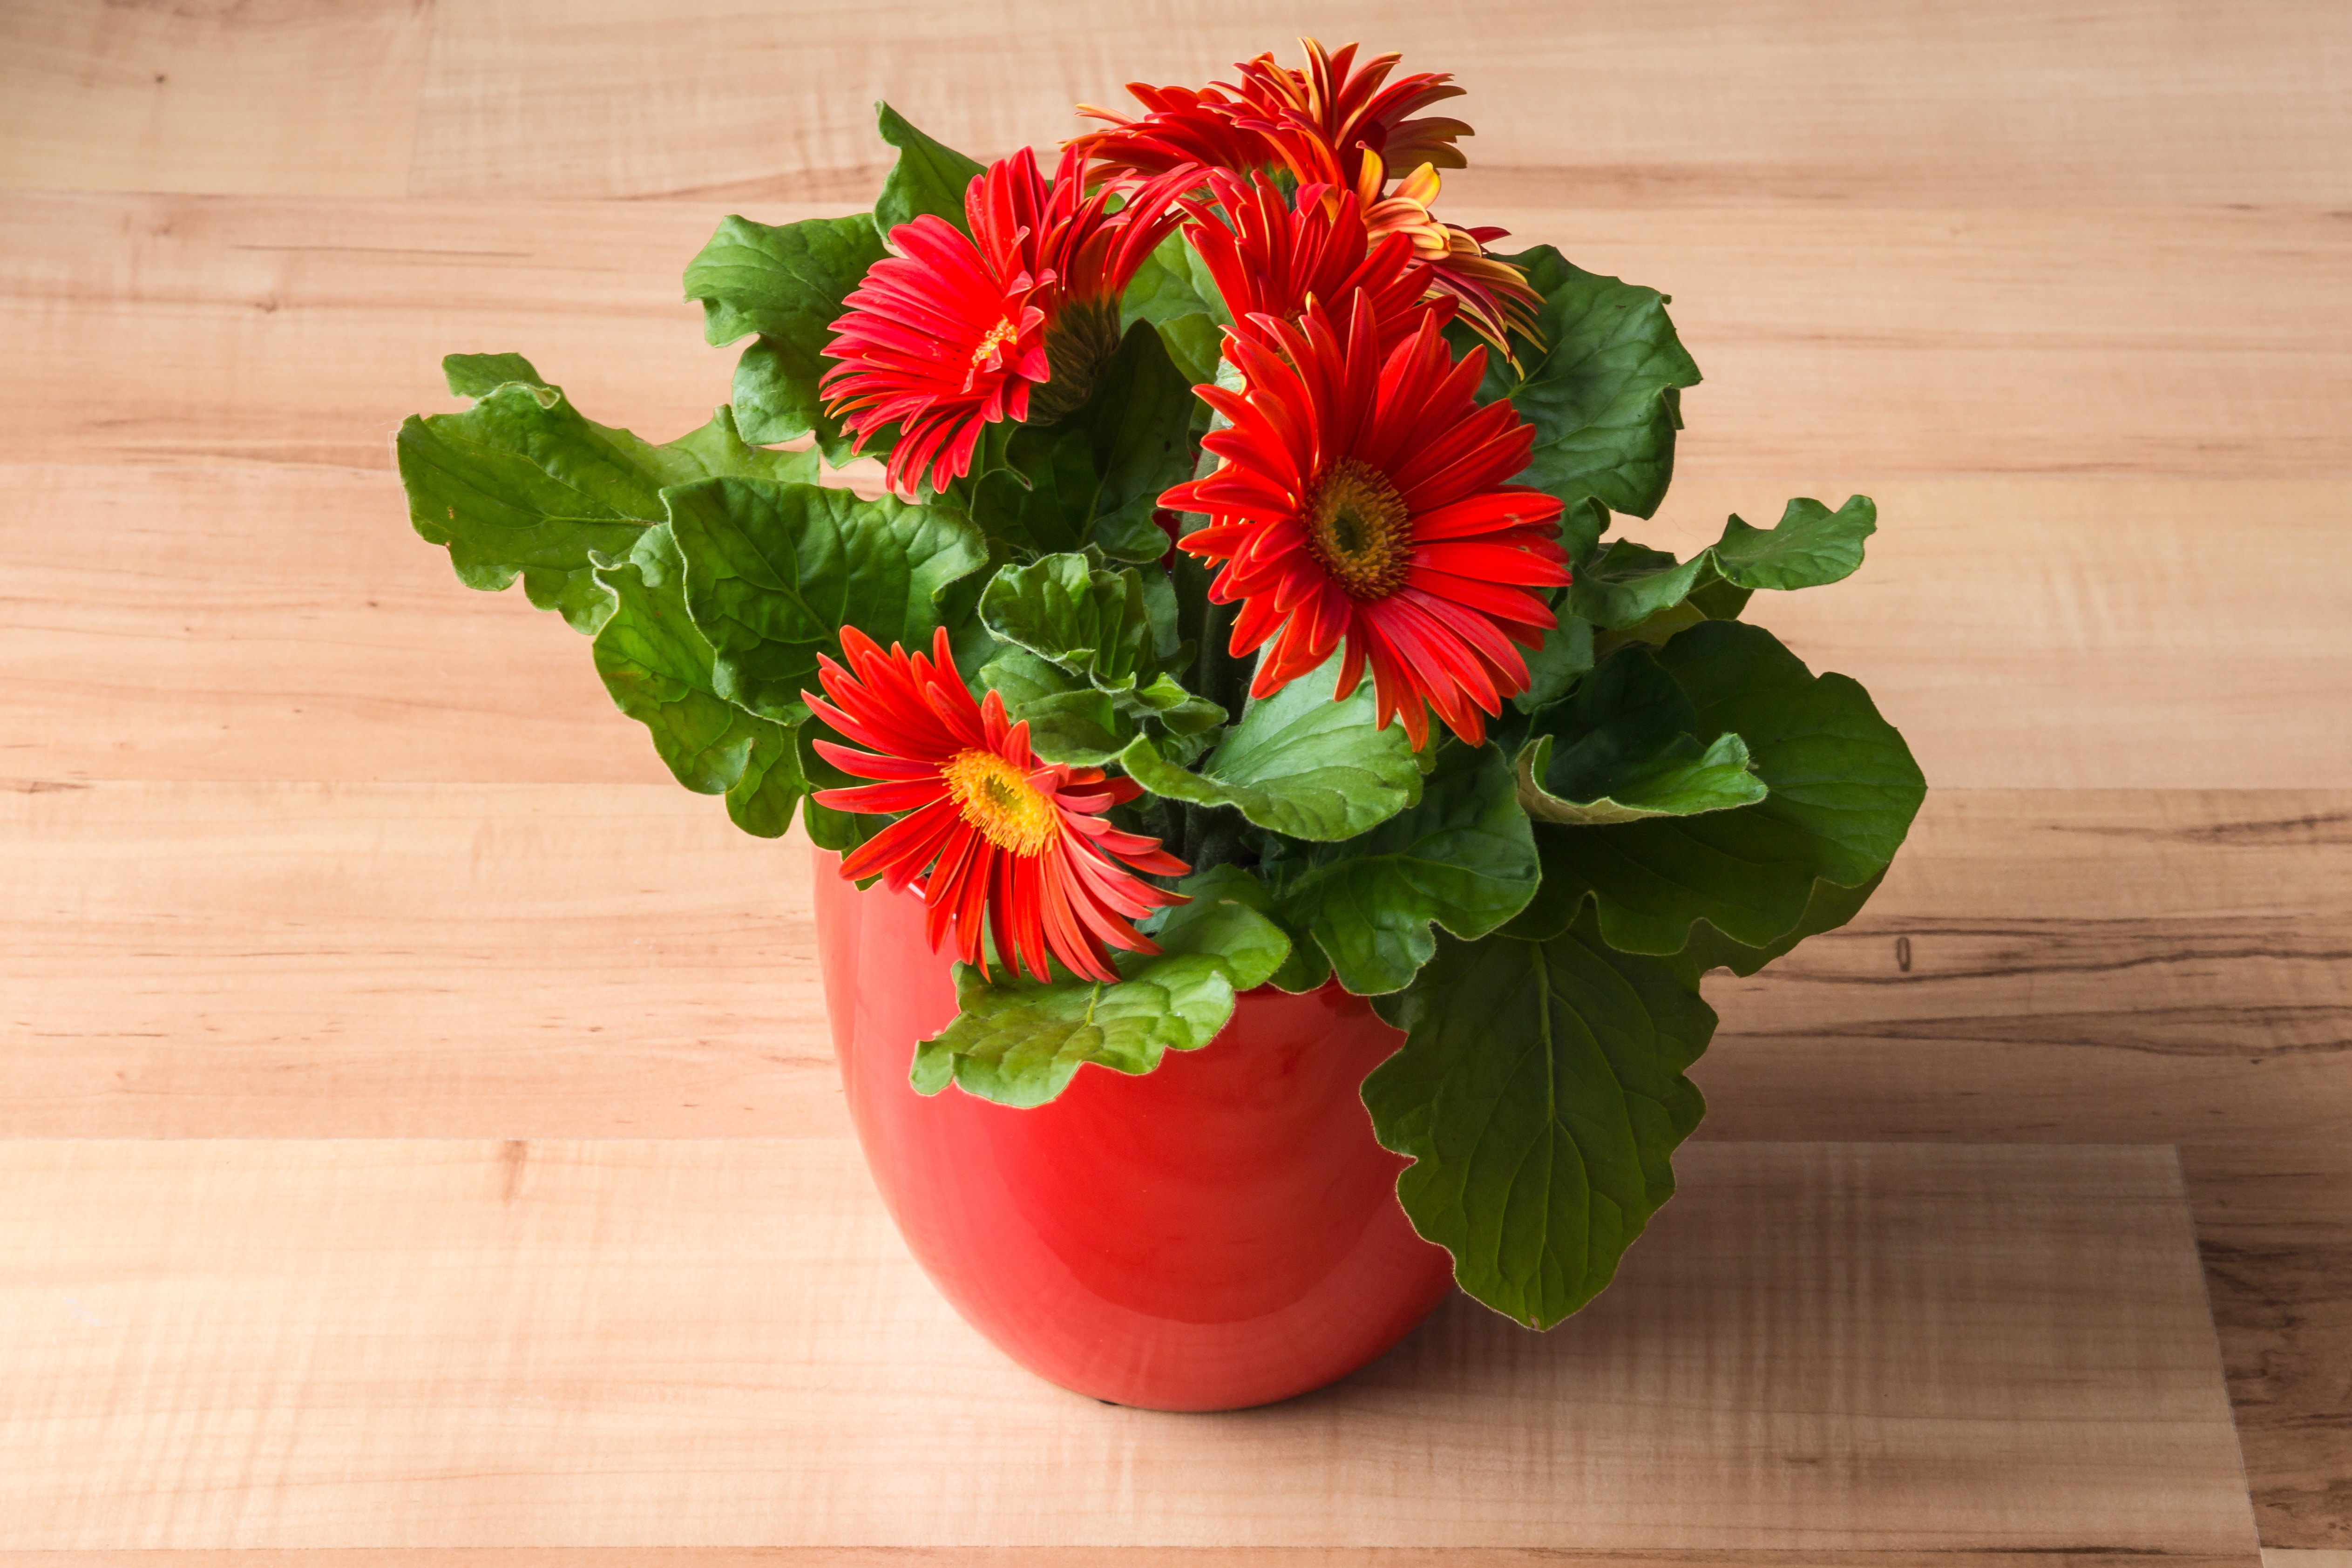 red gerbera daisy plant with flowers in bloom on wooden laminate flooring